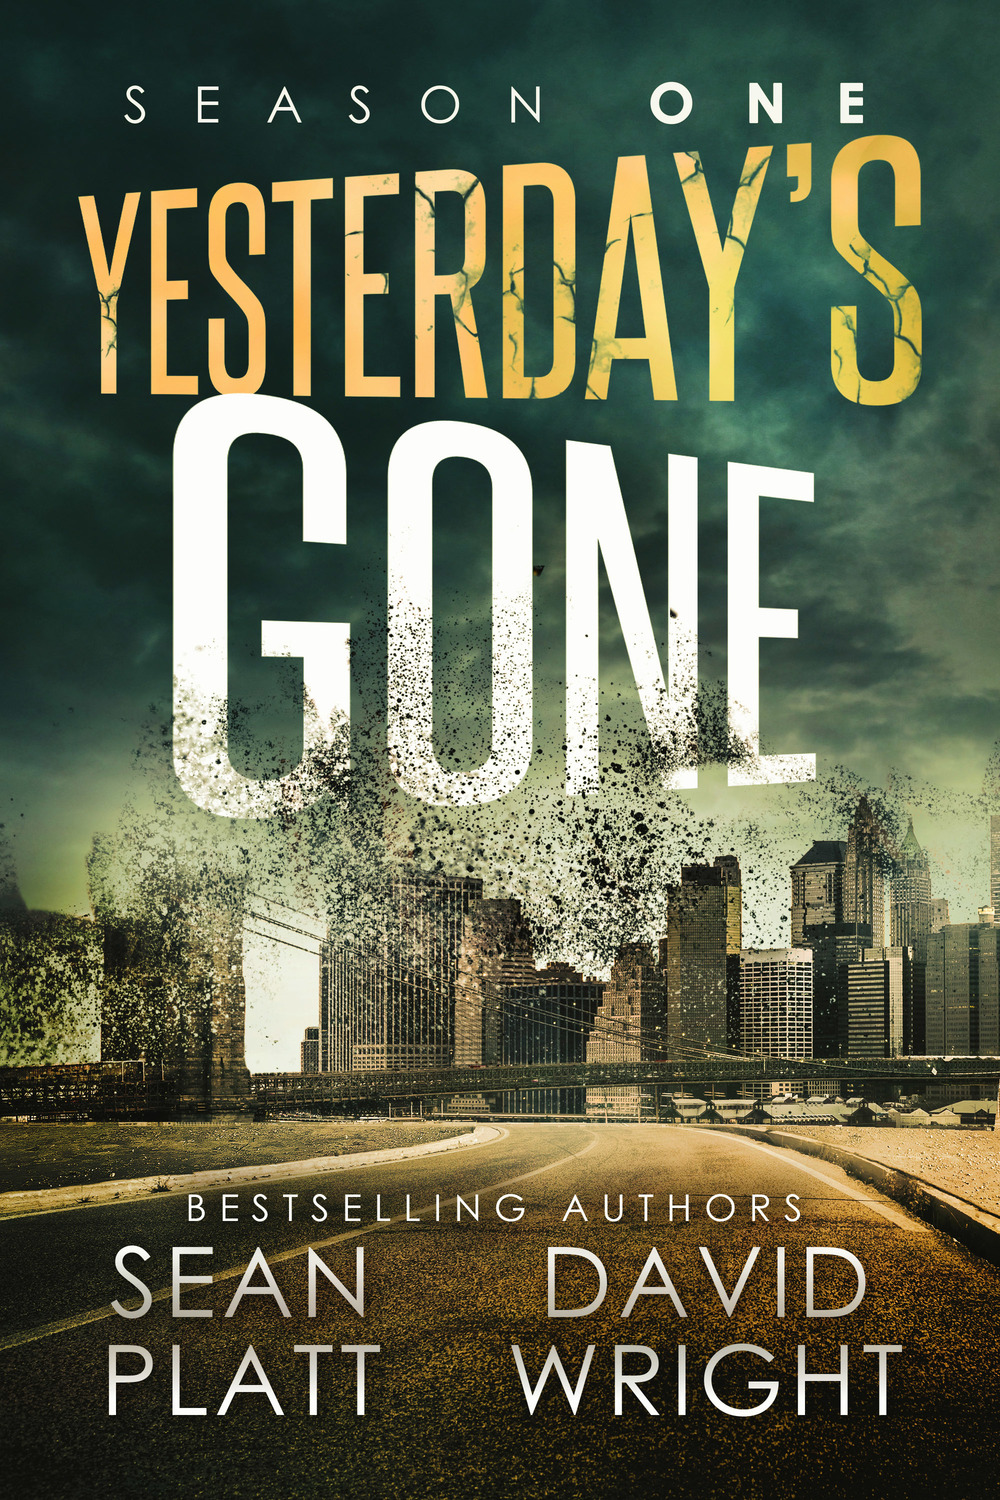 Season One: Yesterday's Gone  by Sean Platt and David Wright